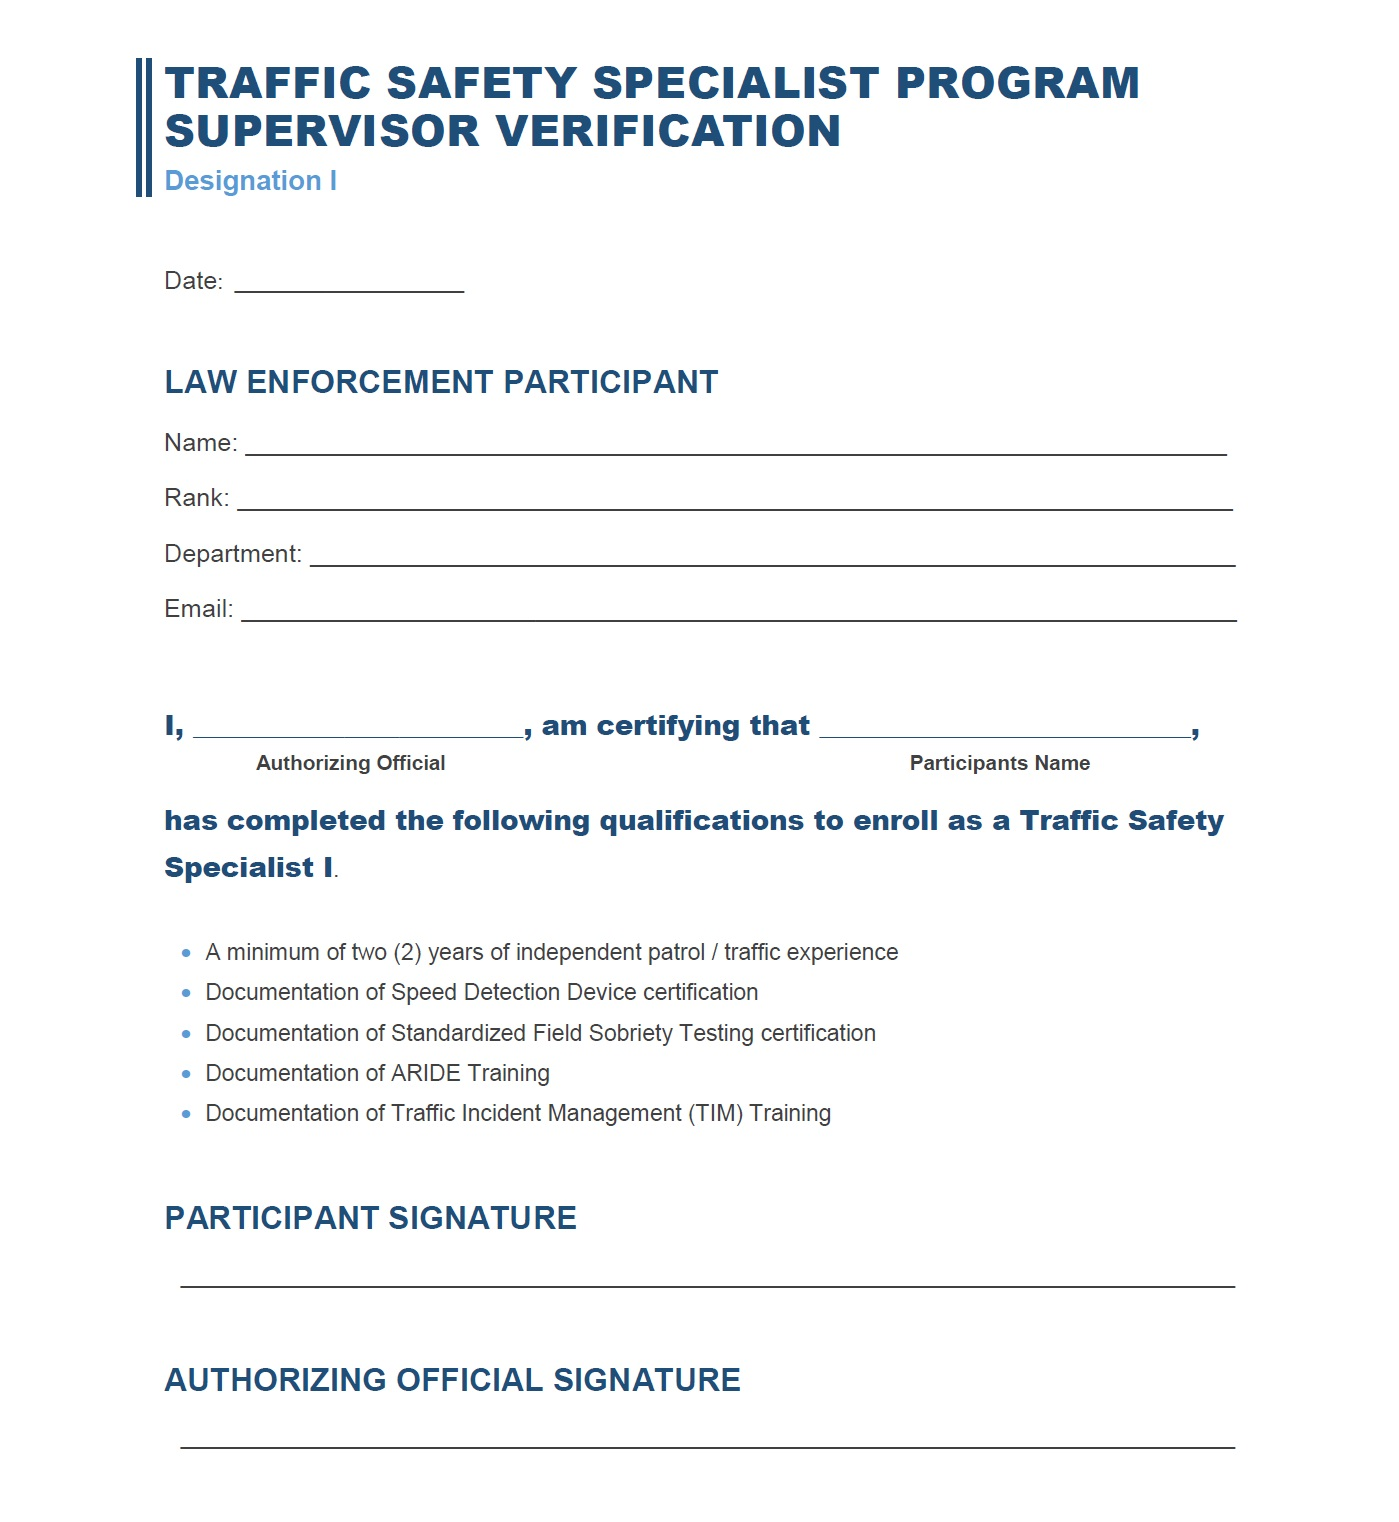 Copy and Print the Supervisor Verification Form and have your immediate supervisor sign.  Upload the form into the Supervisor Verification Documentation below.